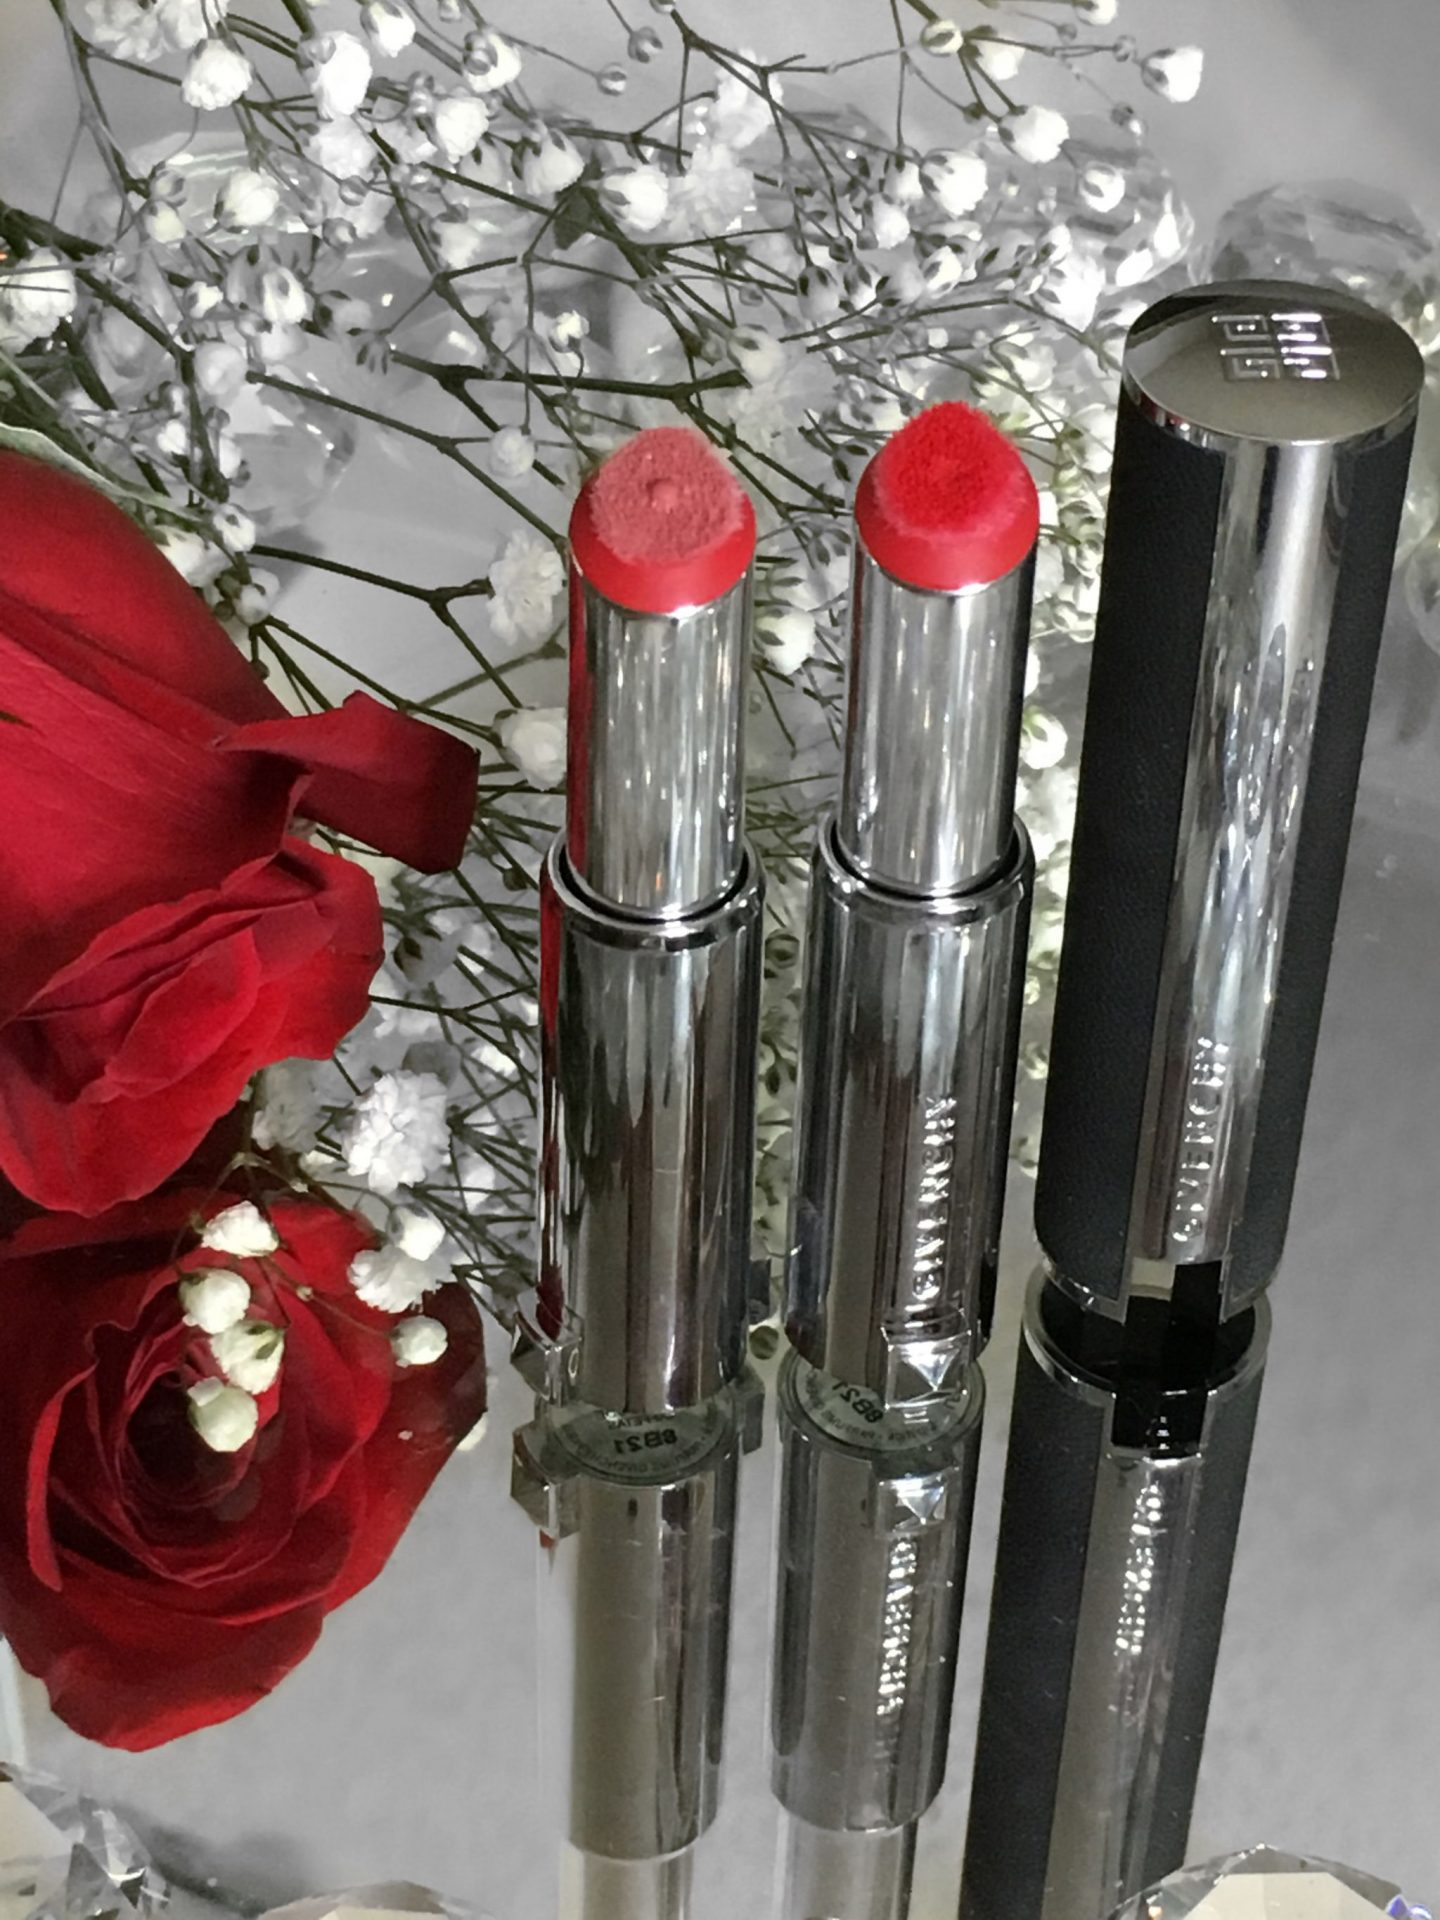 Givenchy Le Rouge Liquide Review & Swatches